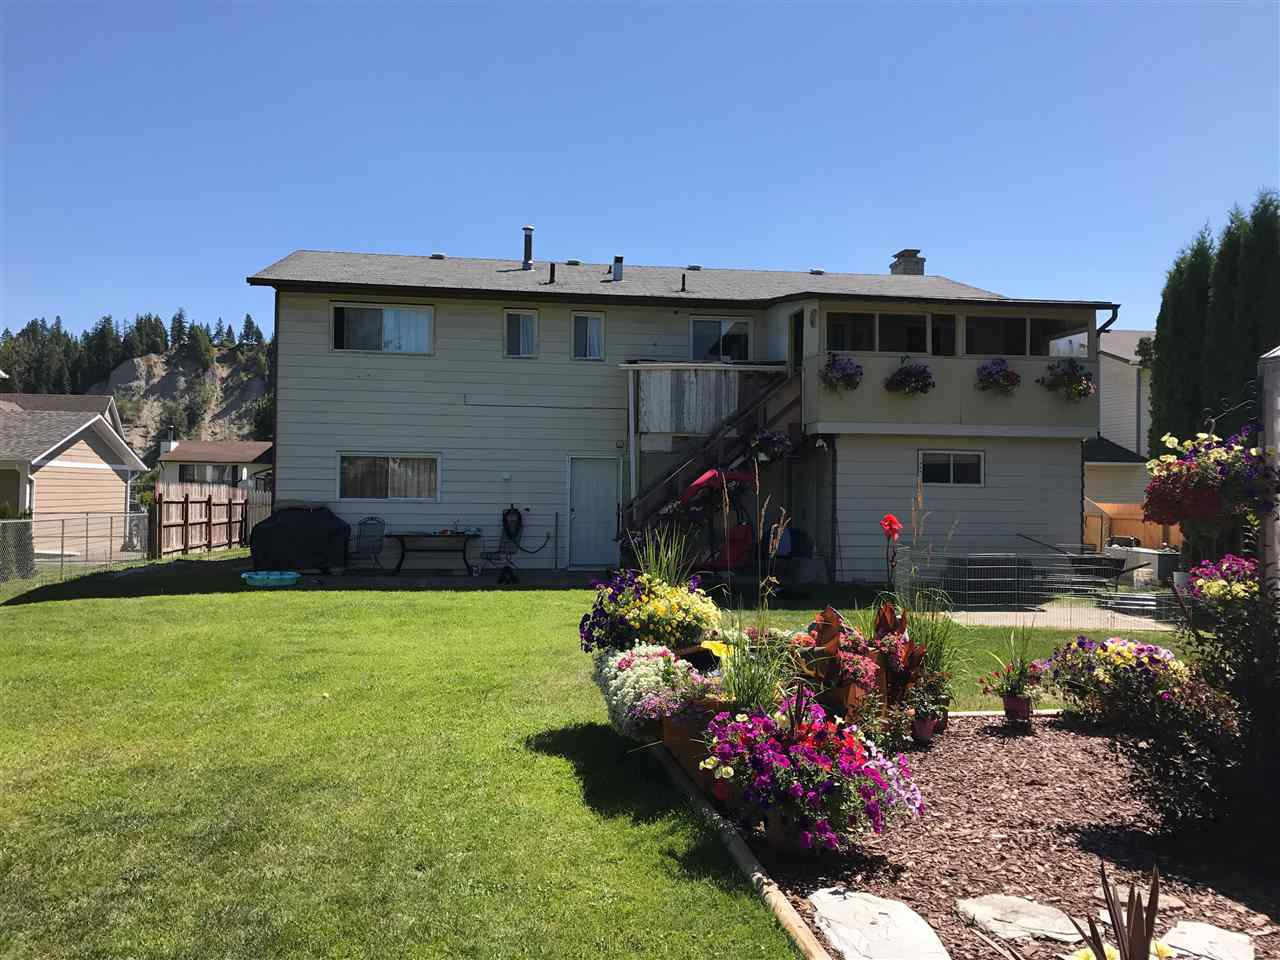 """Photo 2: Photos: 833 W ROLPH Street in Quesnel: Quesnel - Town House for sale in """"WEST QUESNEL"""" (Quesnel (Zone 28))  : MLS®# R2375760"""